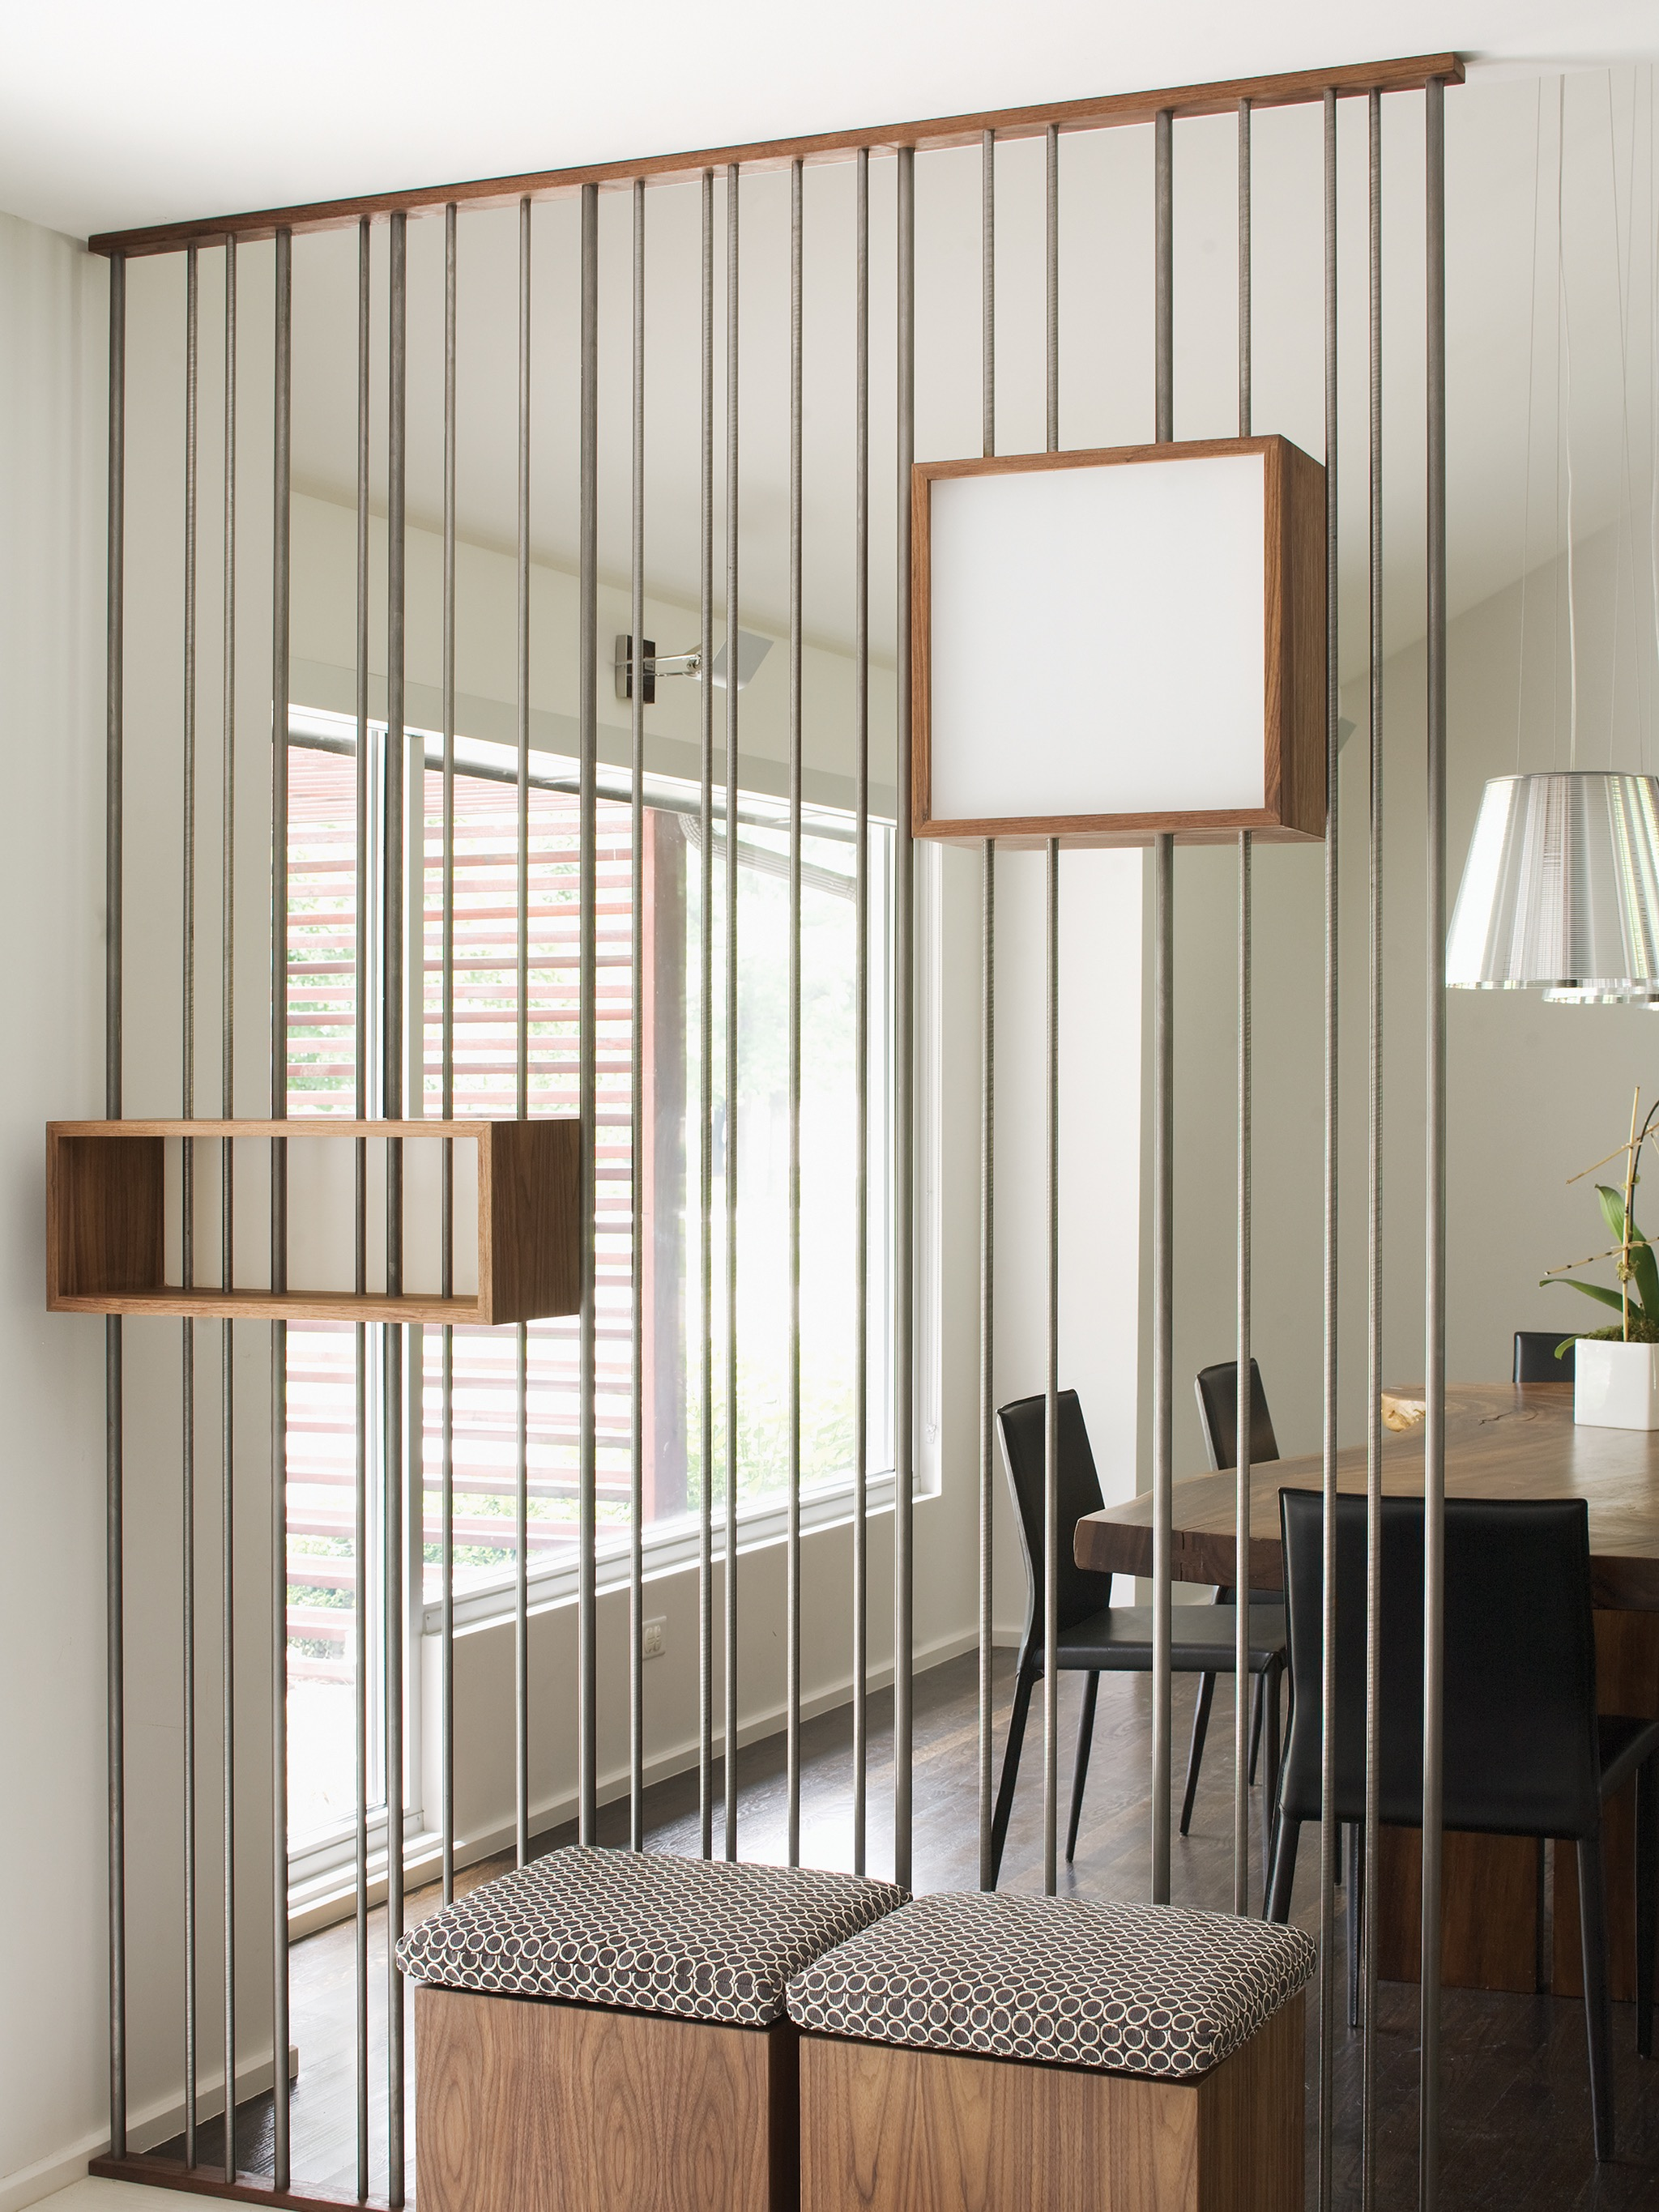 Room Divider Modern Part - 25: Contemporary Sculptural Modern Room Divider With Small Storage (Photo 4 Of  14)